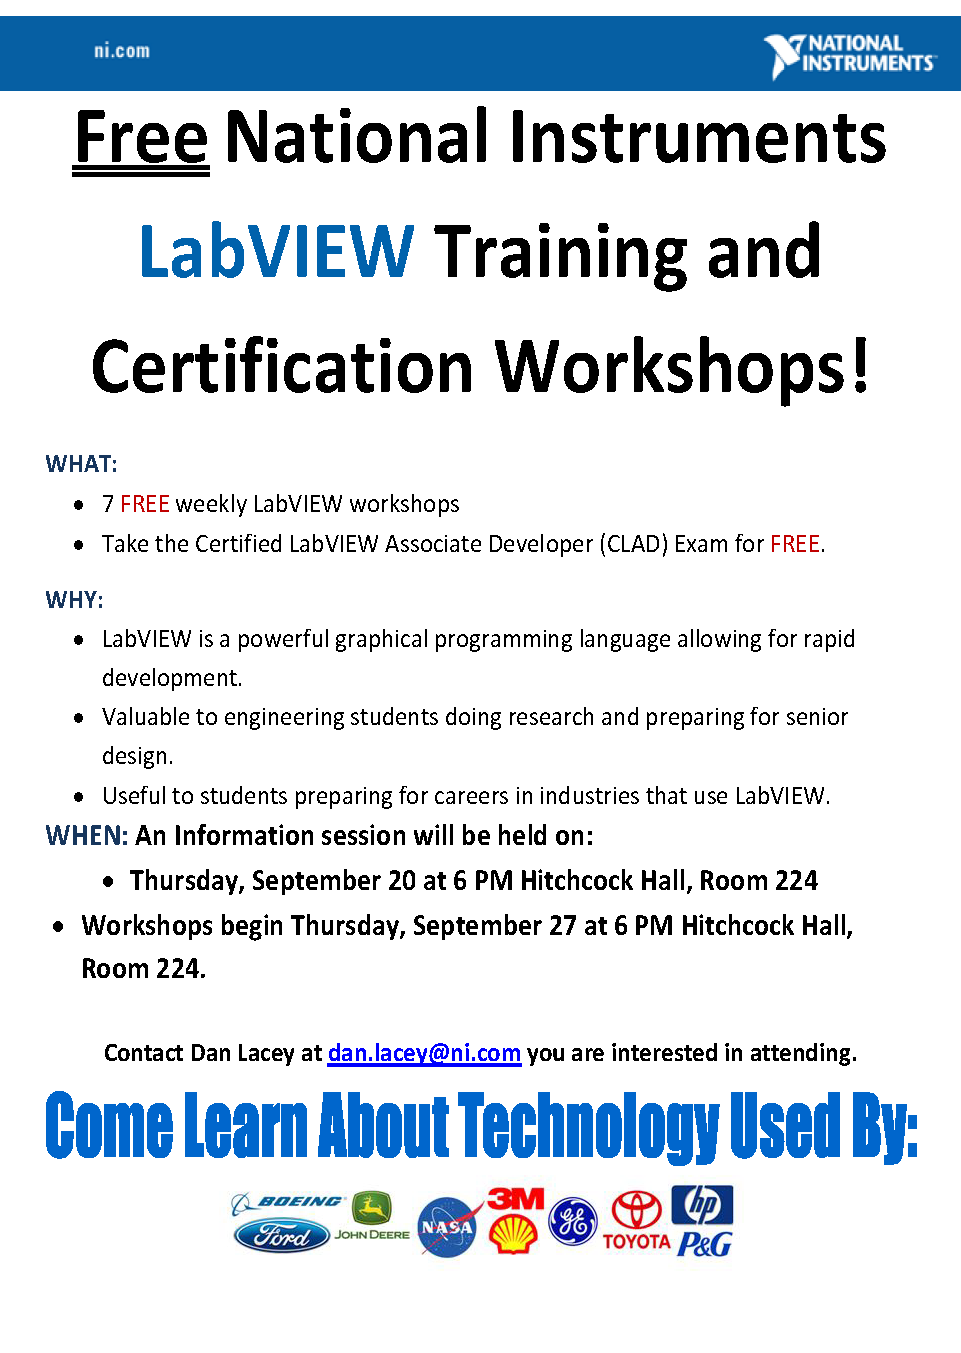 Free National Instruments Labview Training And Certification